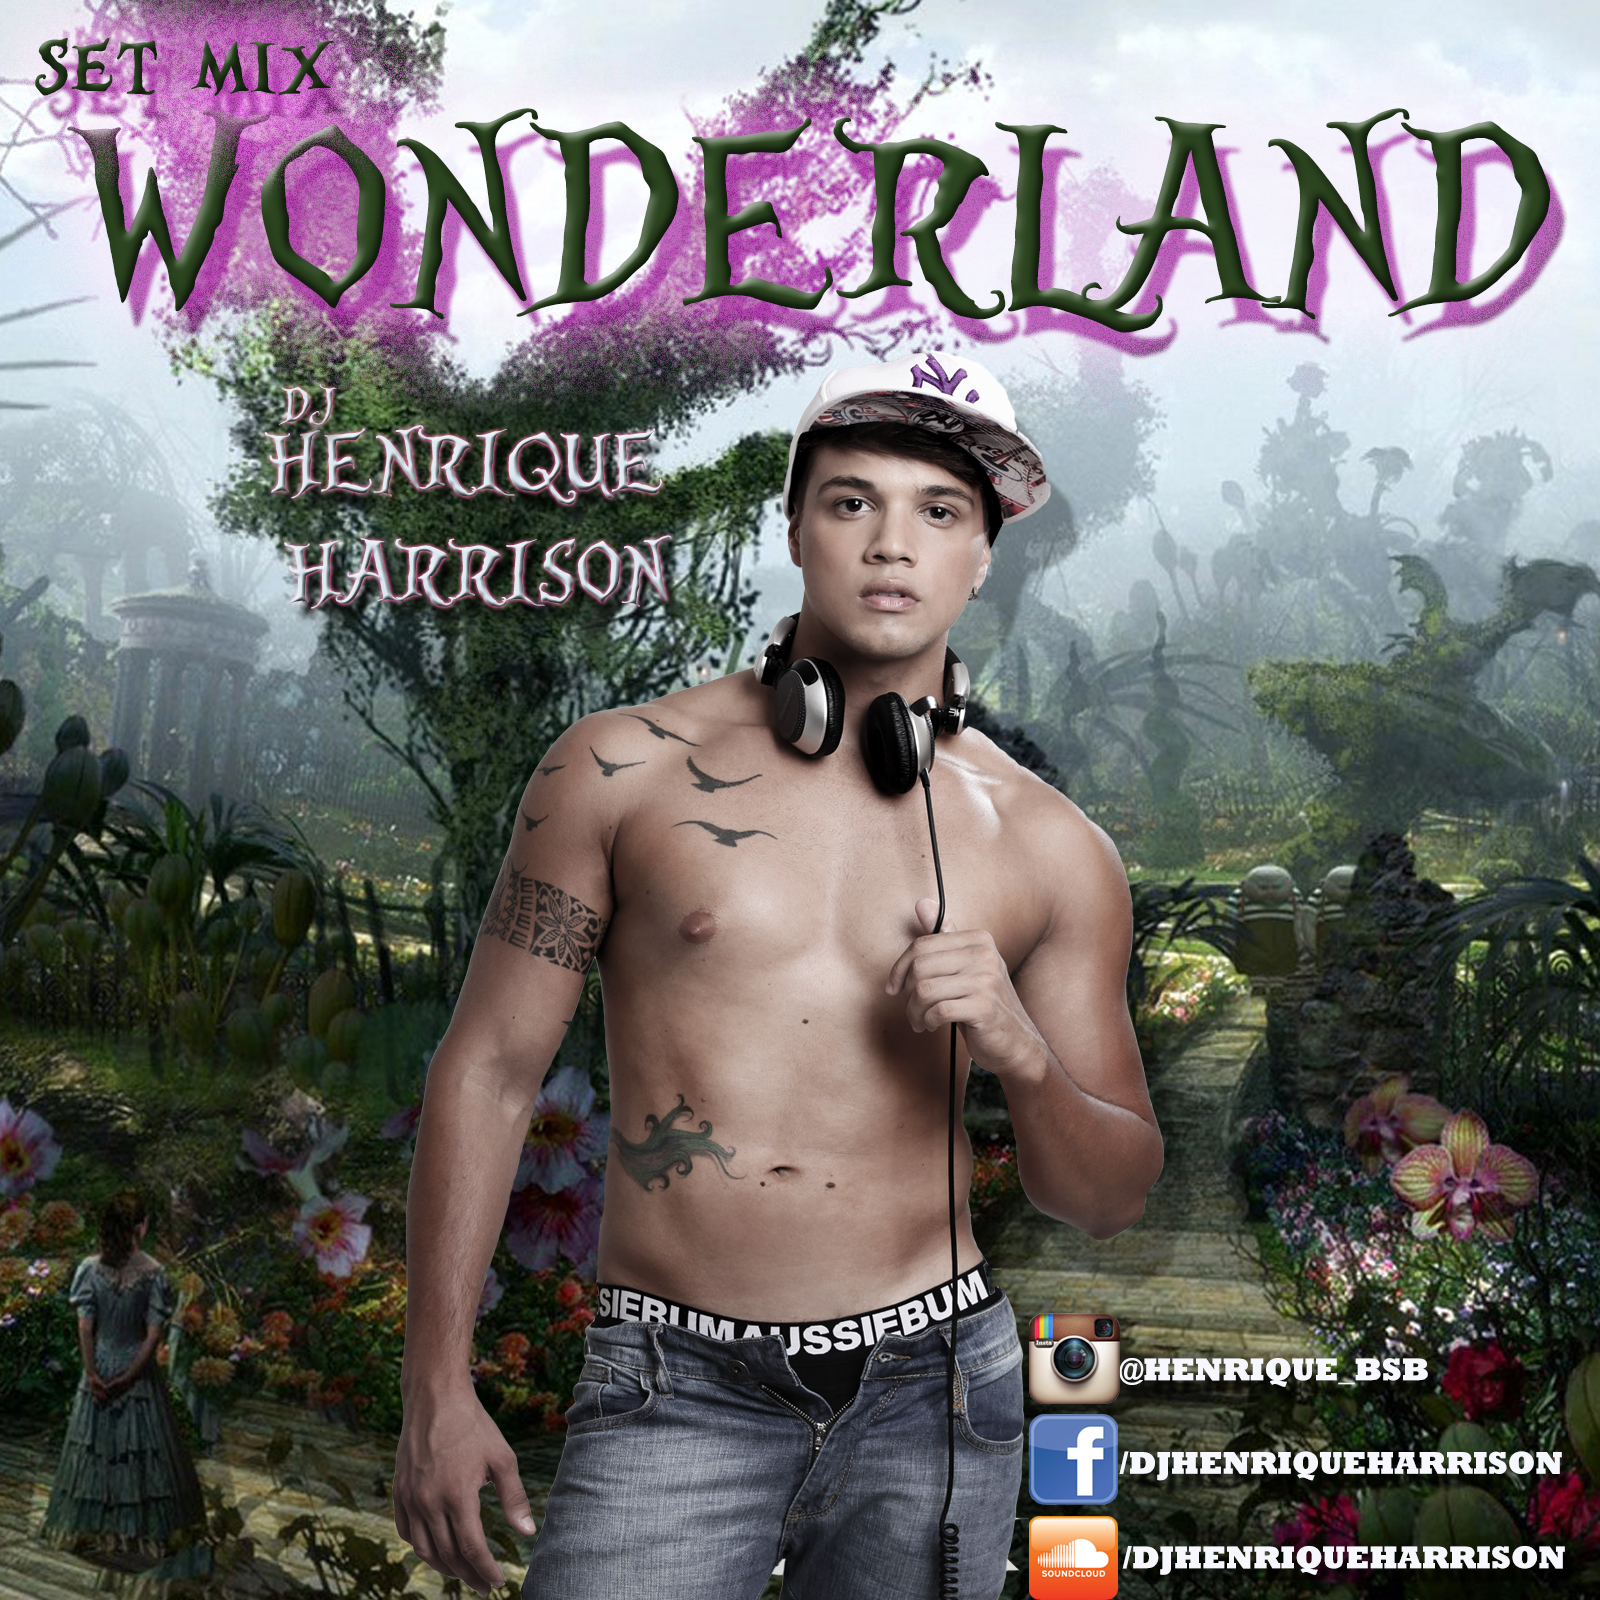 DJ Henrique Harrison - WONDERLAND (Set Mix)